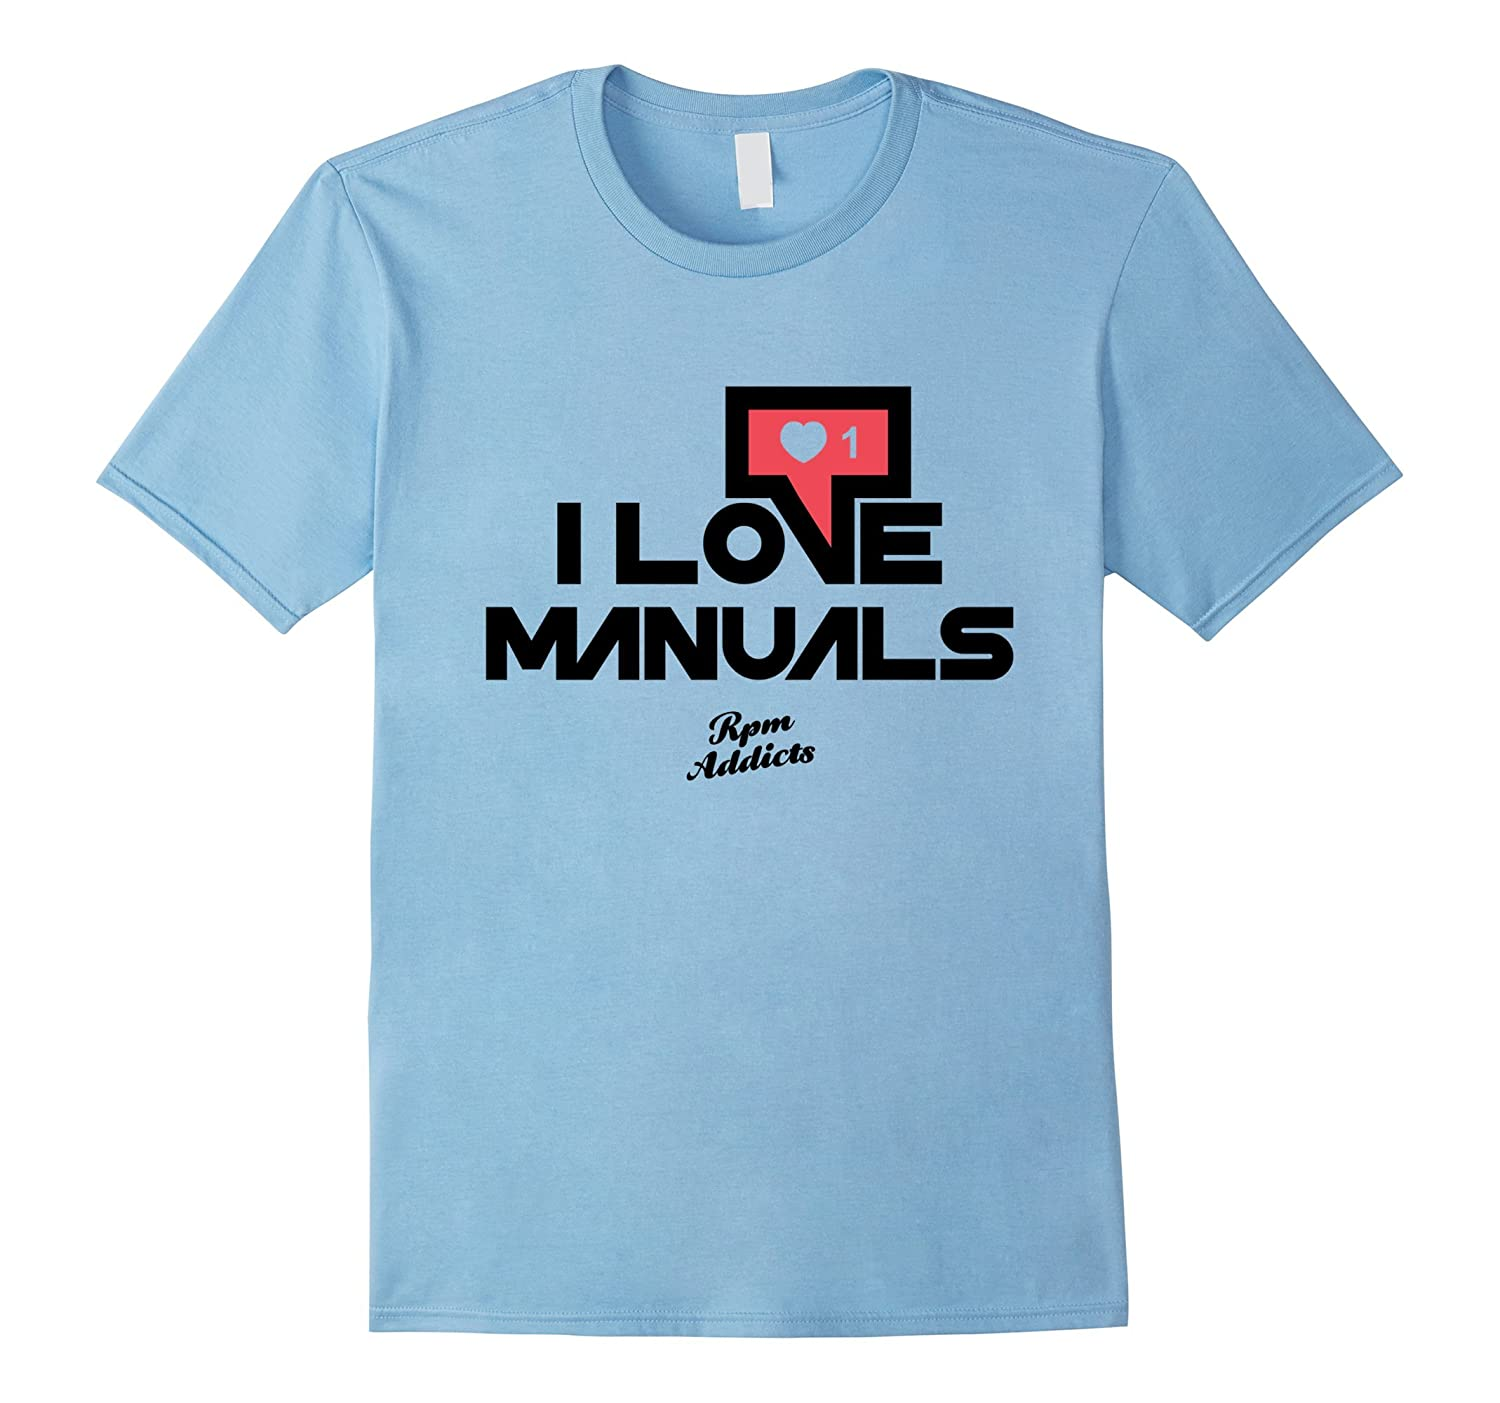 LOVE MANUALS Social Media Shirt for Car Guys-Art